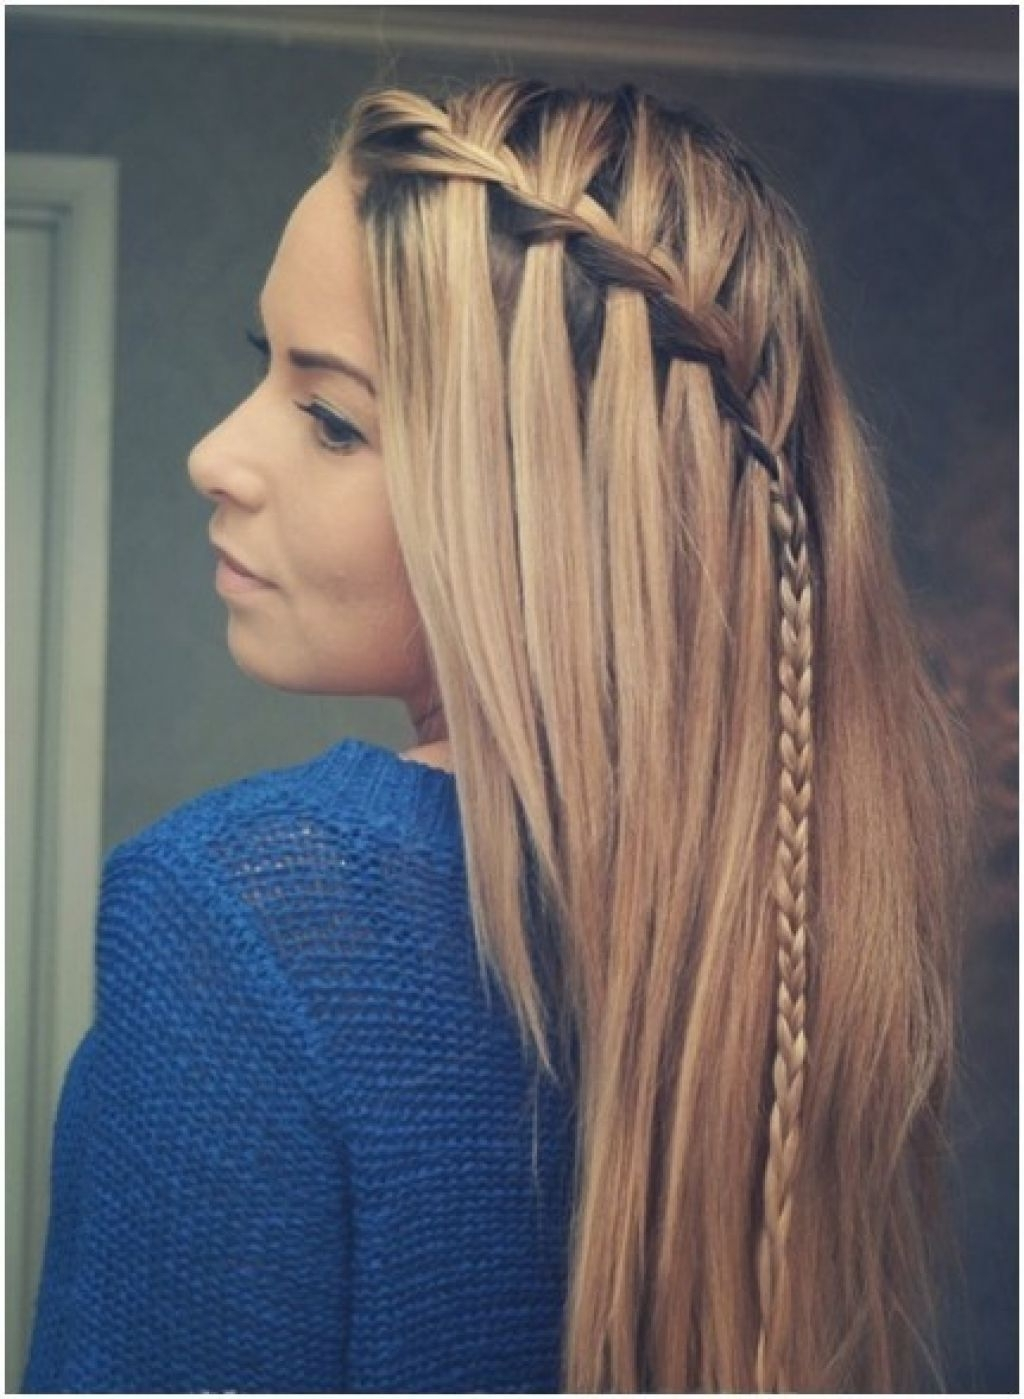 Justswimfl Pertaining To Well Known Easy Wedding Hairstyles For Long Straight Hair (Gallery 13 of 15)